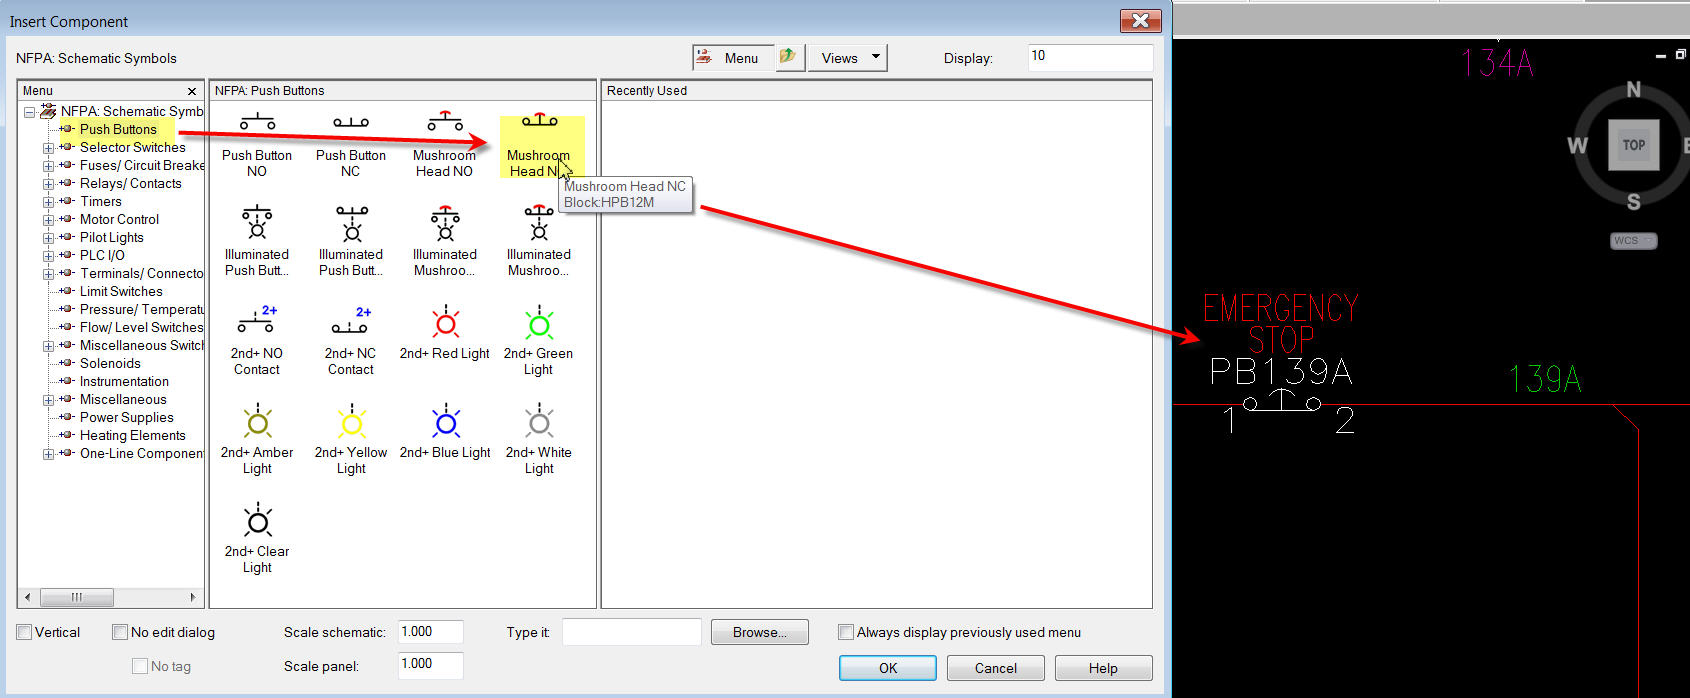 JIC EStop Buttons ... - Autodesk Community- AutoCAD Electrical